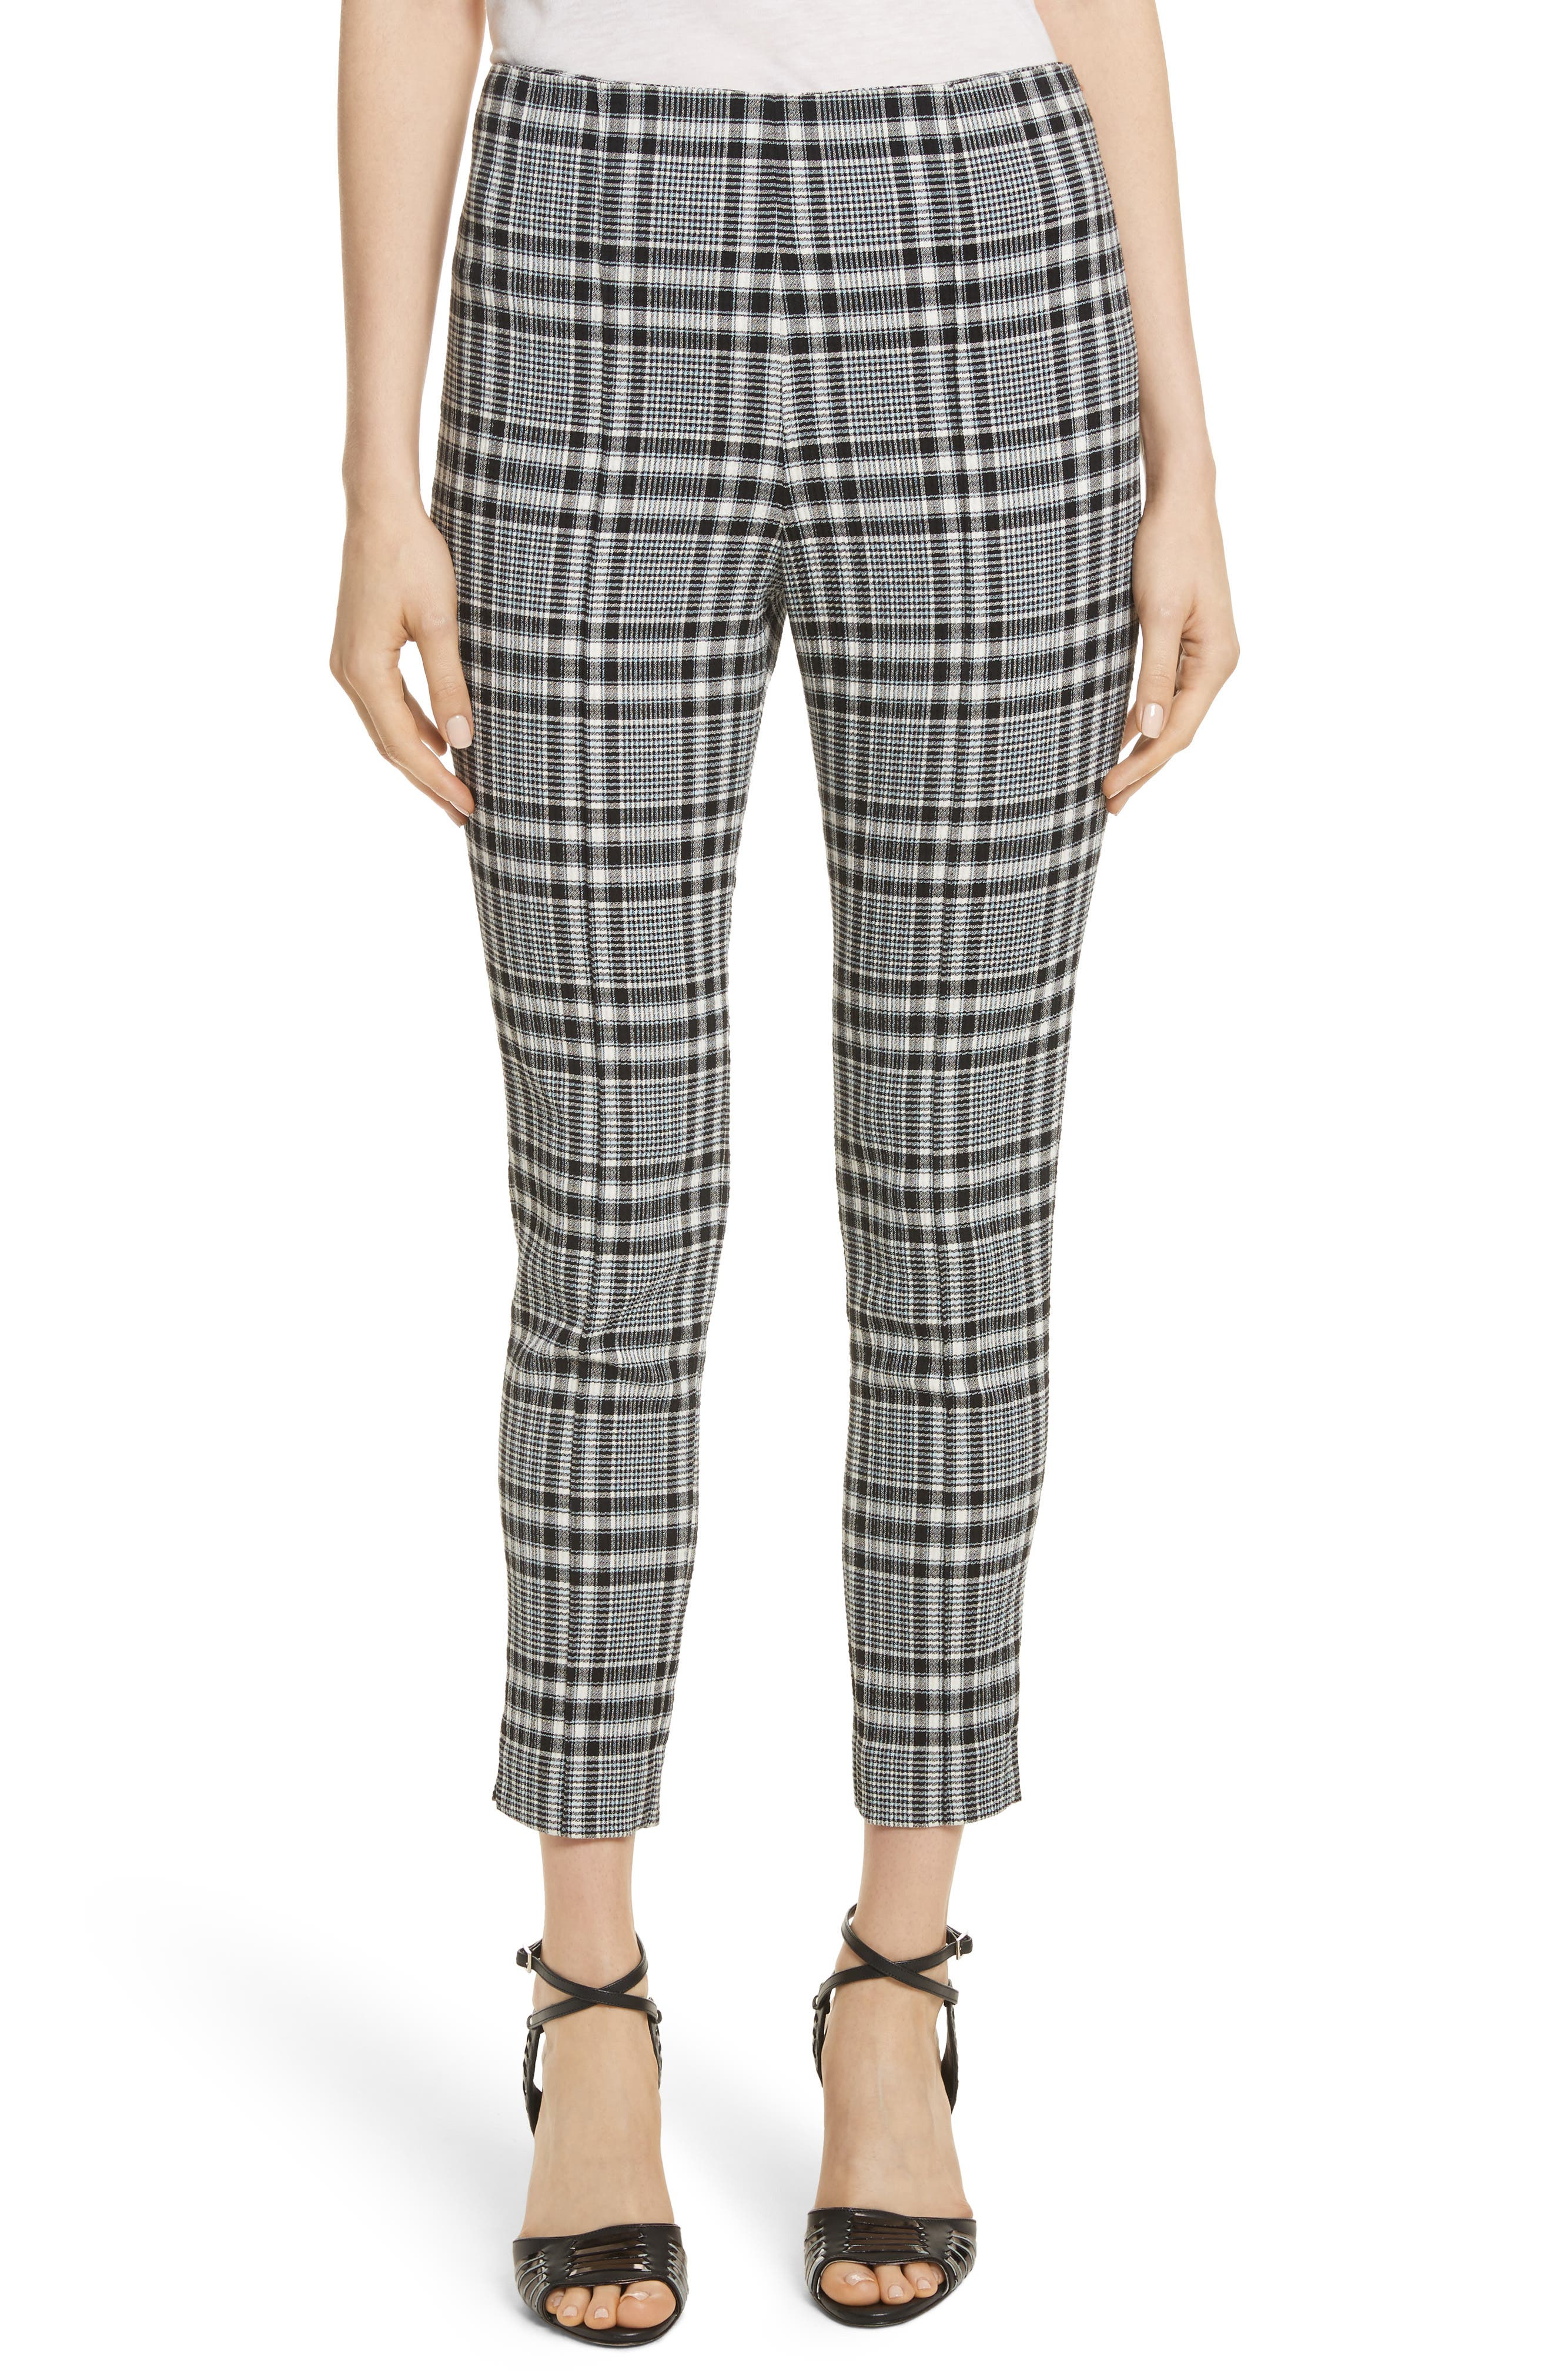 Honolulu Plaid Crop Pants,                             Main thumbnail 1, color,                             Black/ Blue